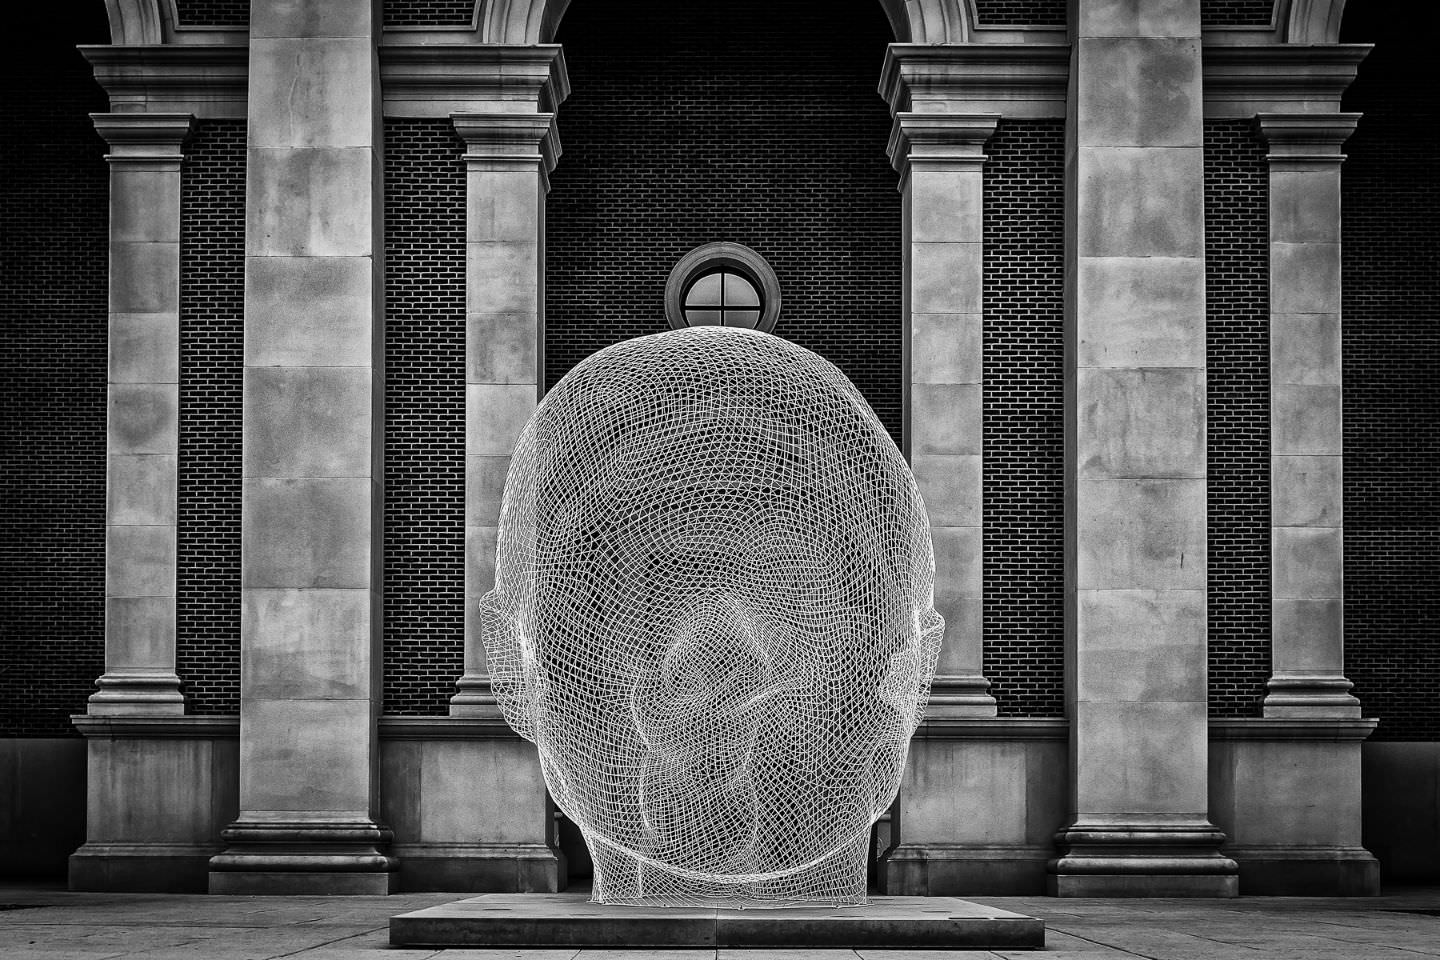 A 13-foot-tall stainless steel sculpture of a woman's head titled Sho by Spanish sculptor Jaume Plensa sits in front of the Meadows Museum of Art on the campus of SMU in Dallas.